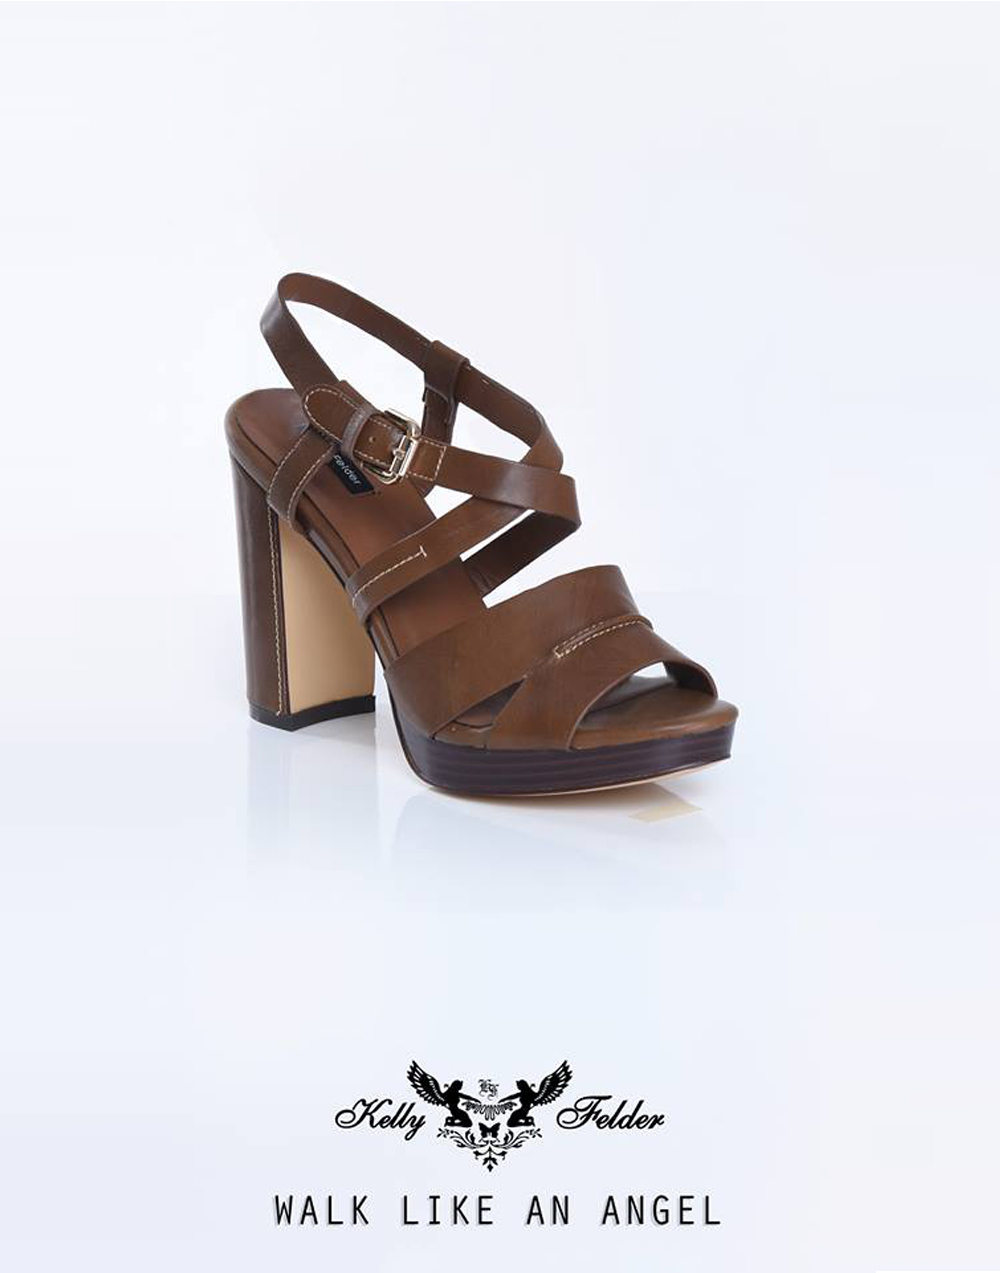 """ Seraphina "" Open-Toe Sling Back With Block Heels"